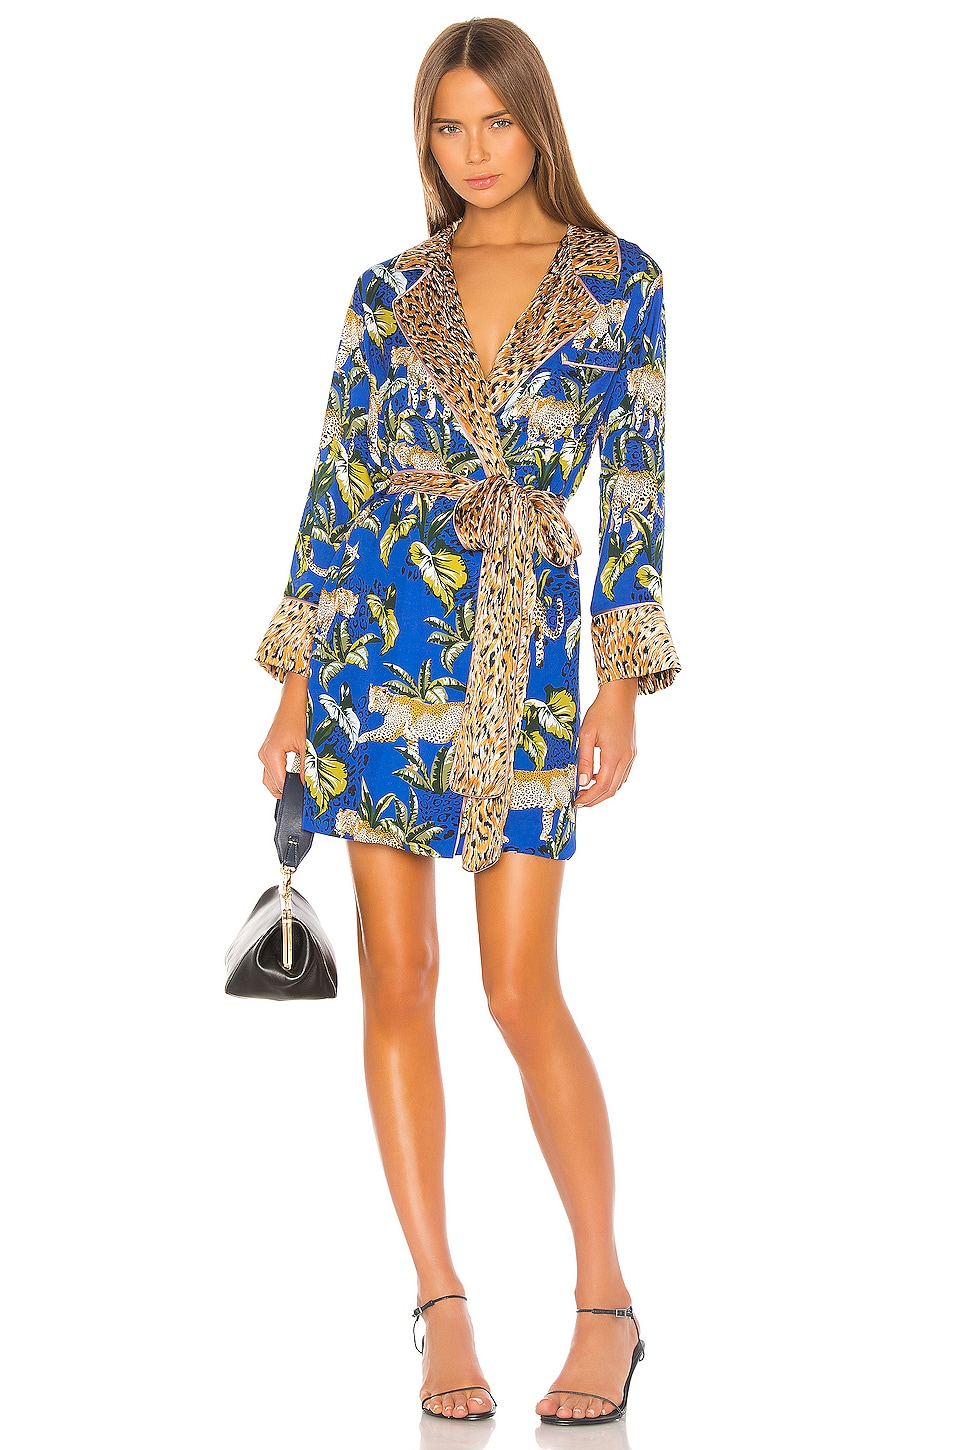 Le Superbe Moonshadows Robe Dress in Roaming Leopards